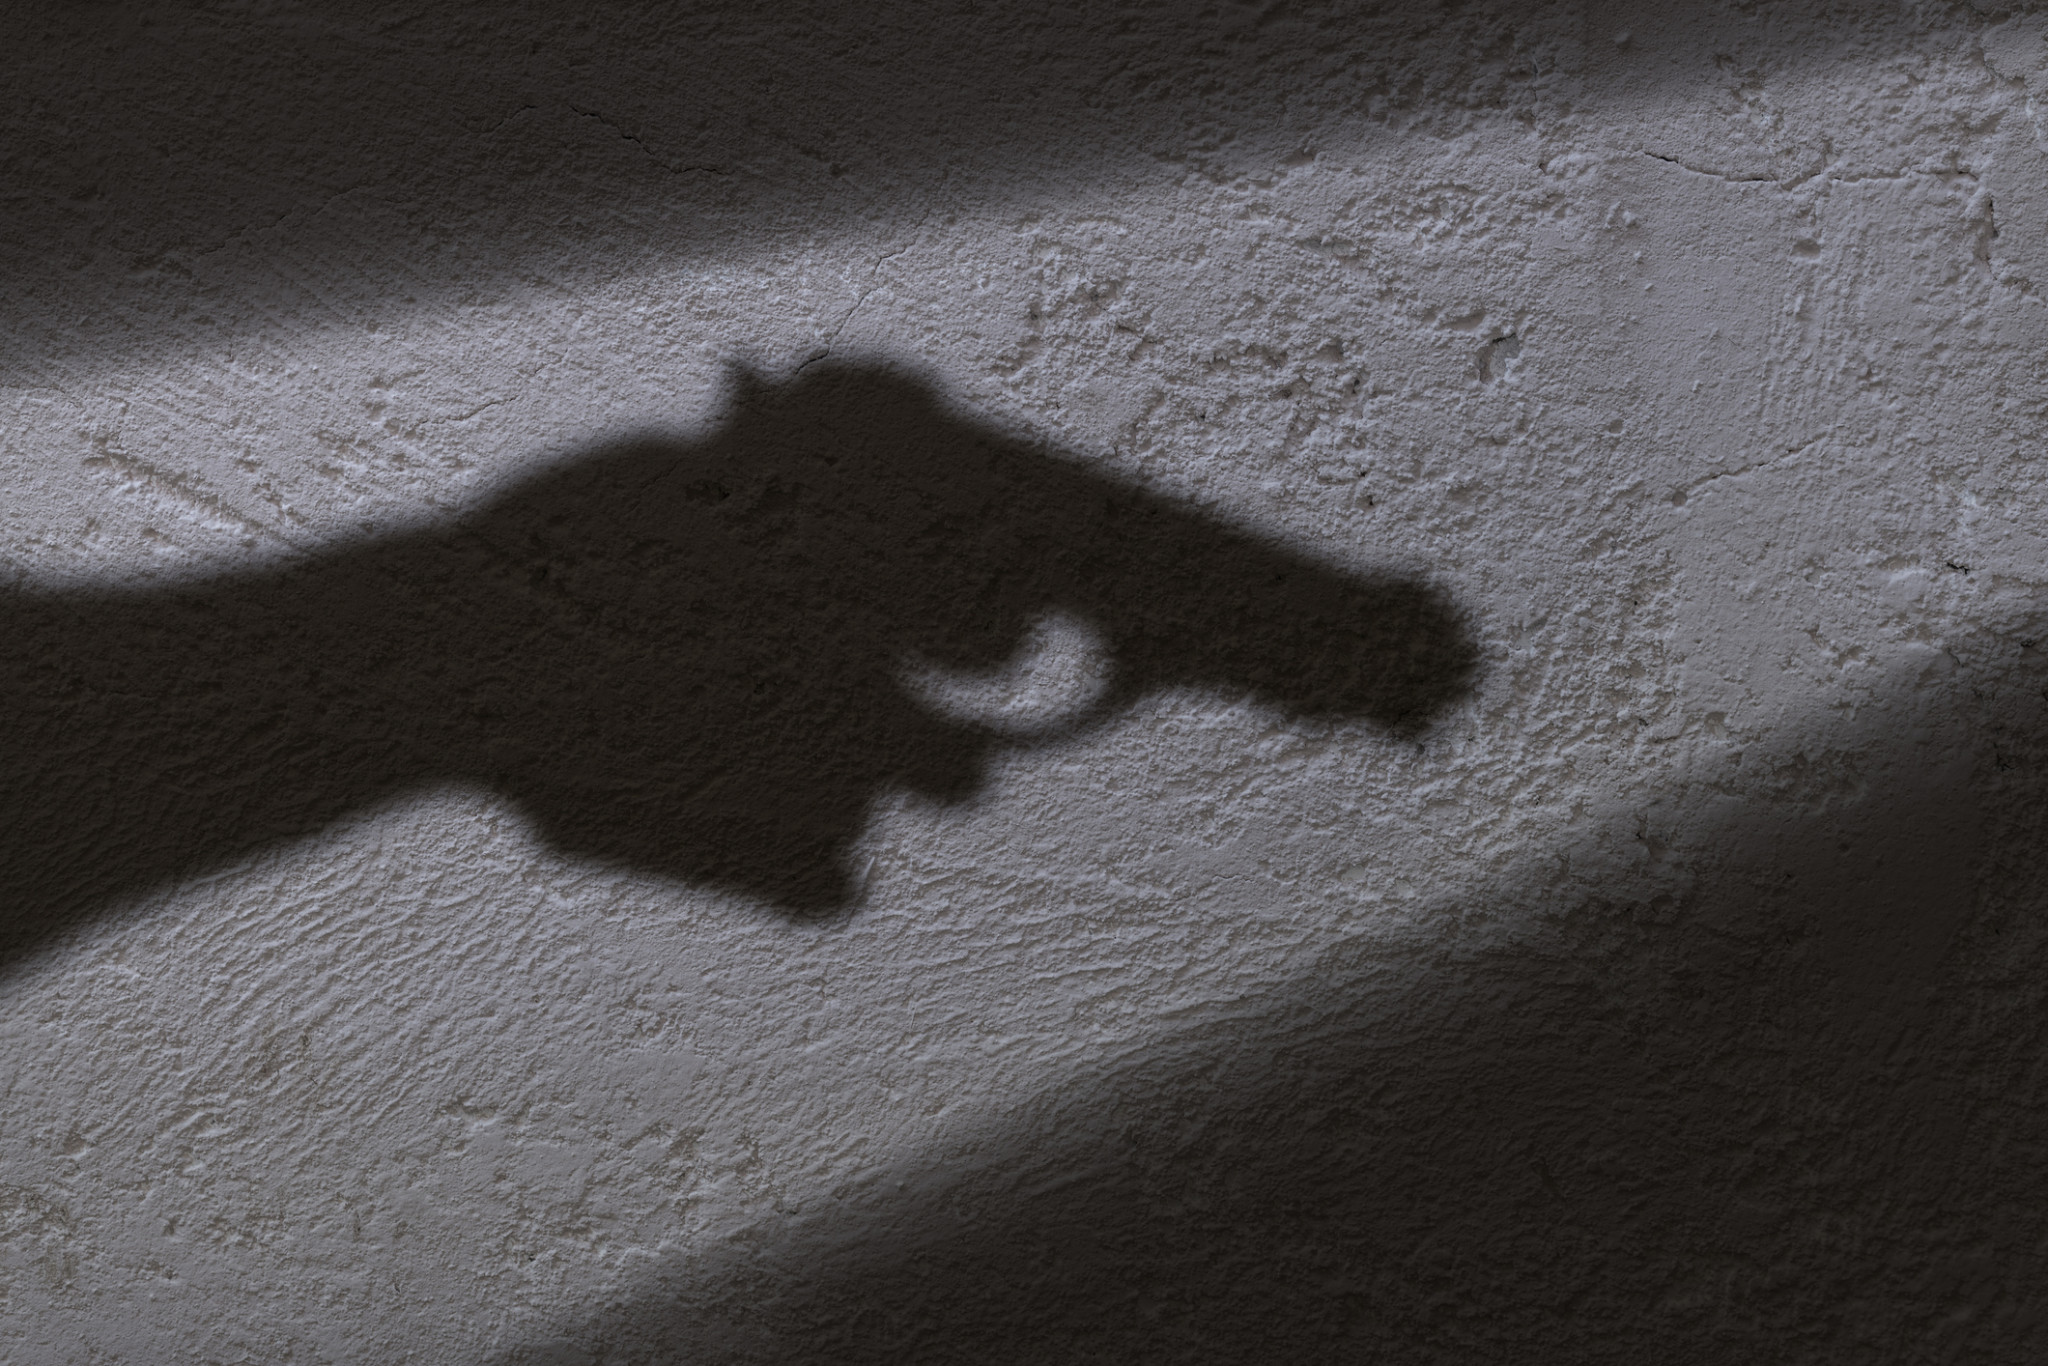 firearm and concealed weapon coverage